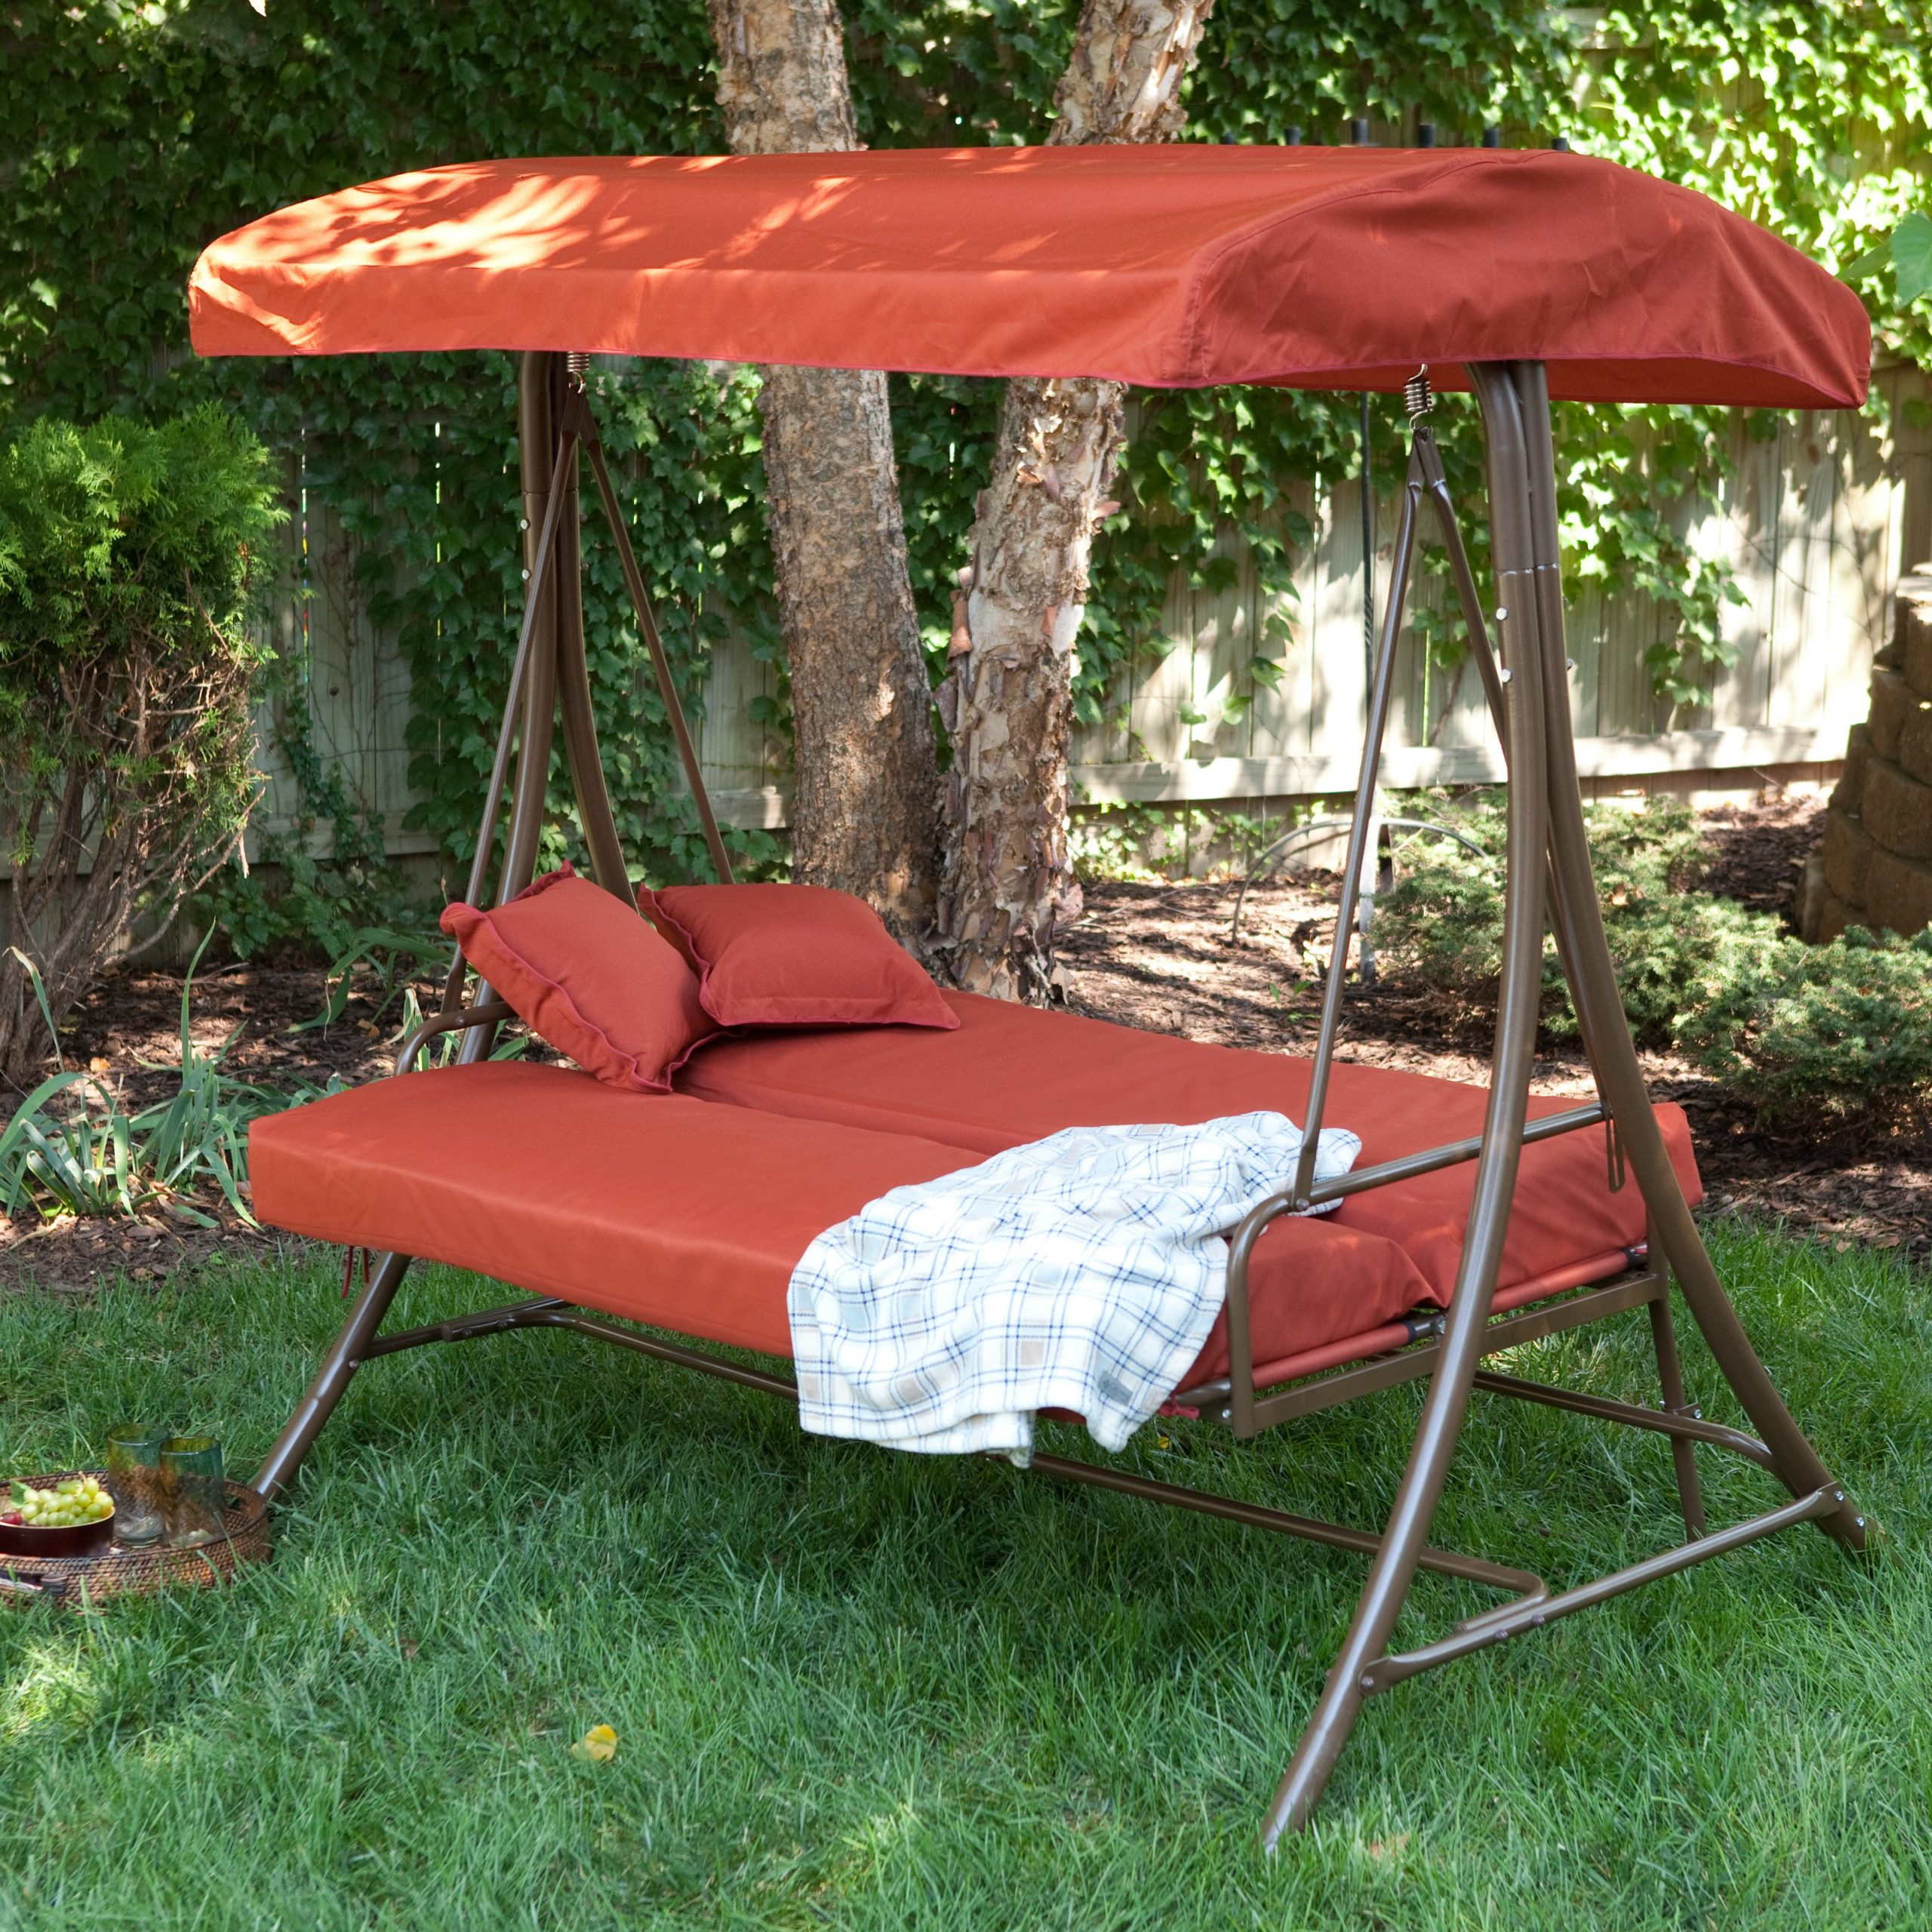 Hammock Patio Backyard Deck Ideas Dining Set Umbrella With With Canopy Patio Porch Swing With Stand (View 15 of 25)